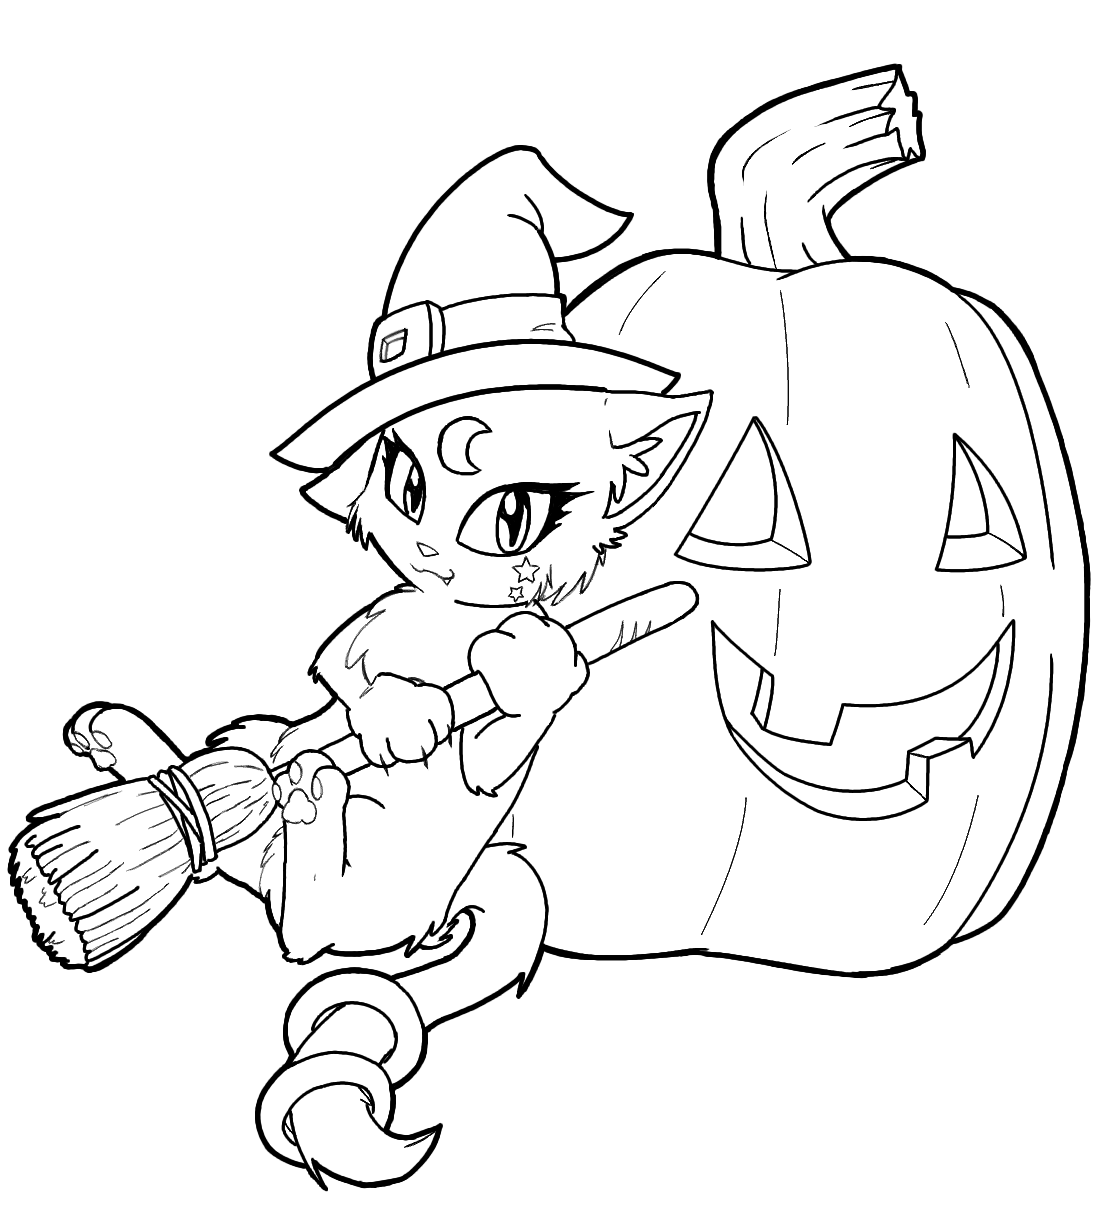 1098x1230 Free Printable Witch Coloring Pages For Kids Exceptional Adults